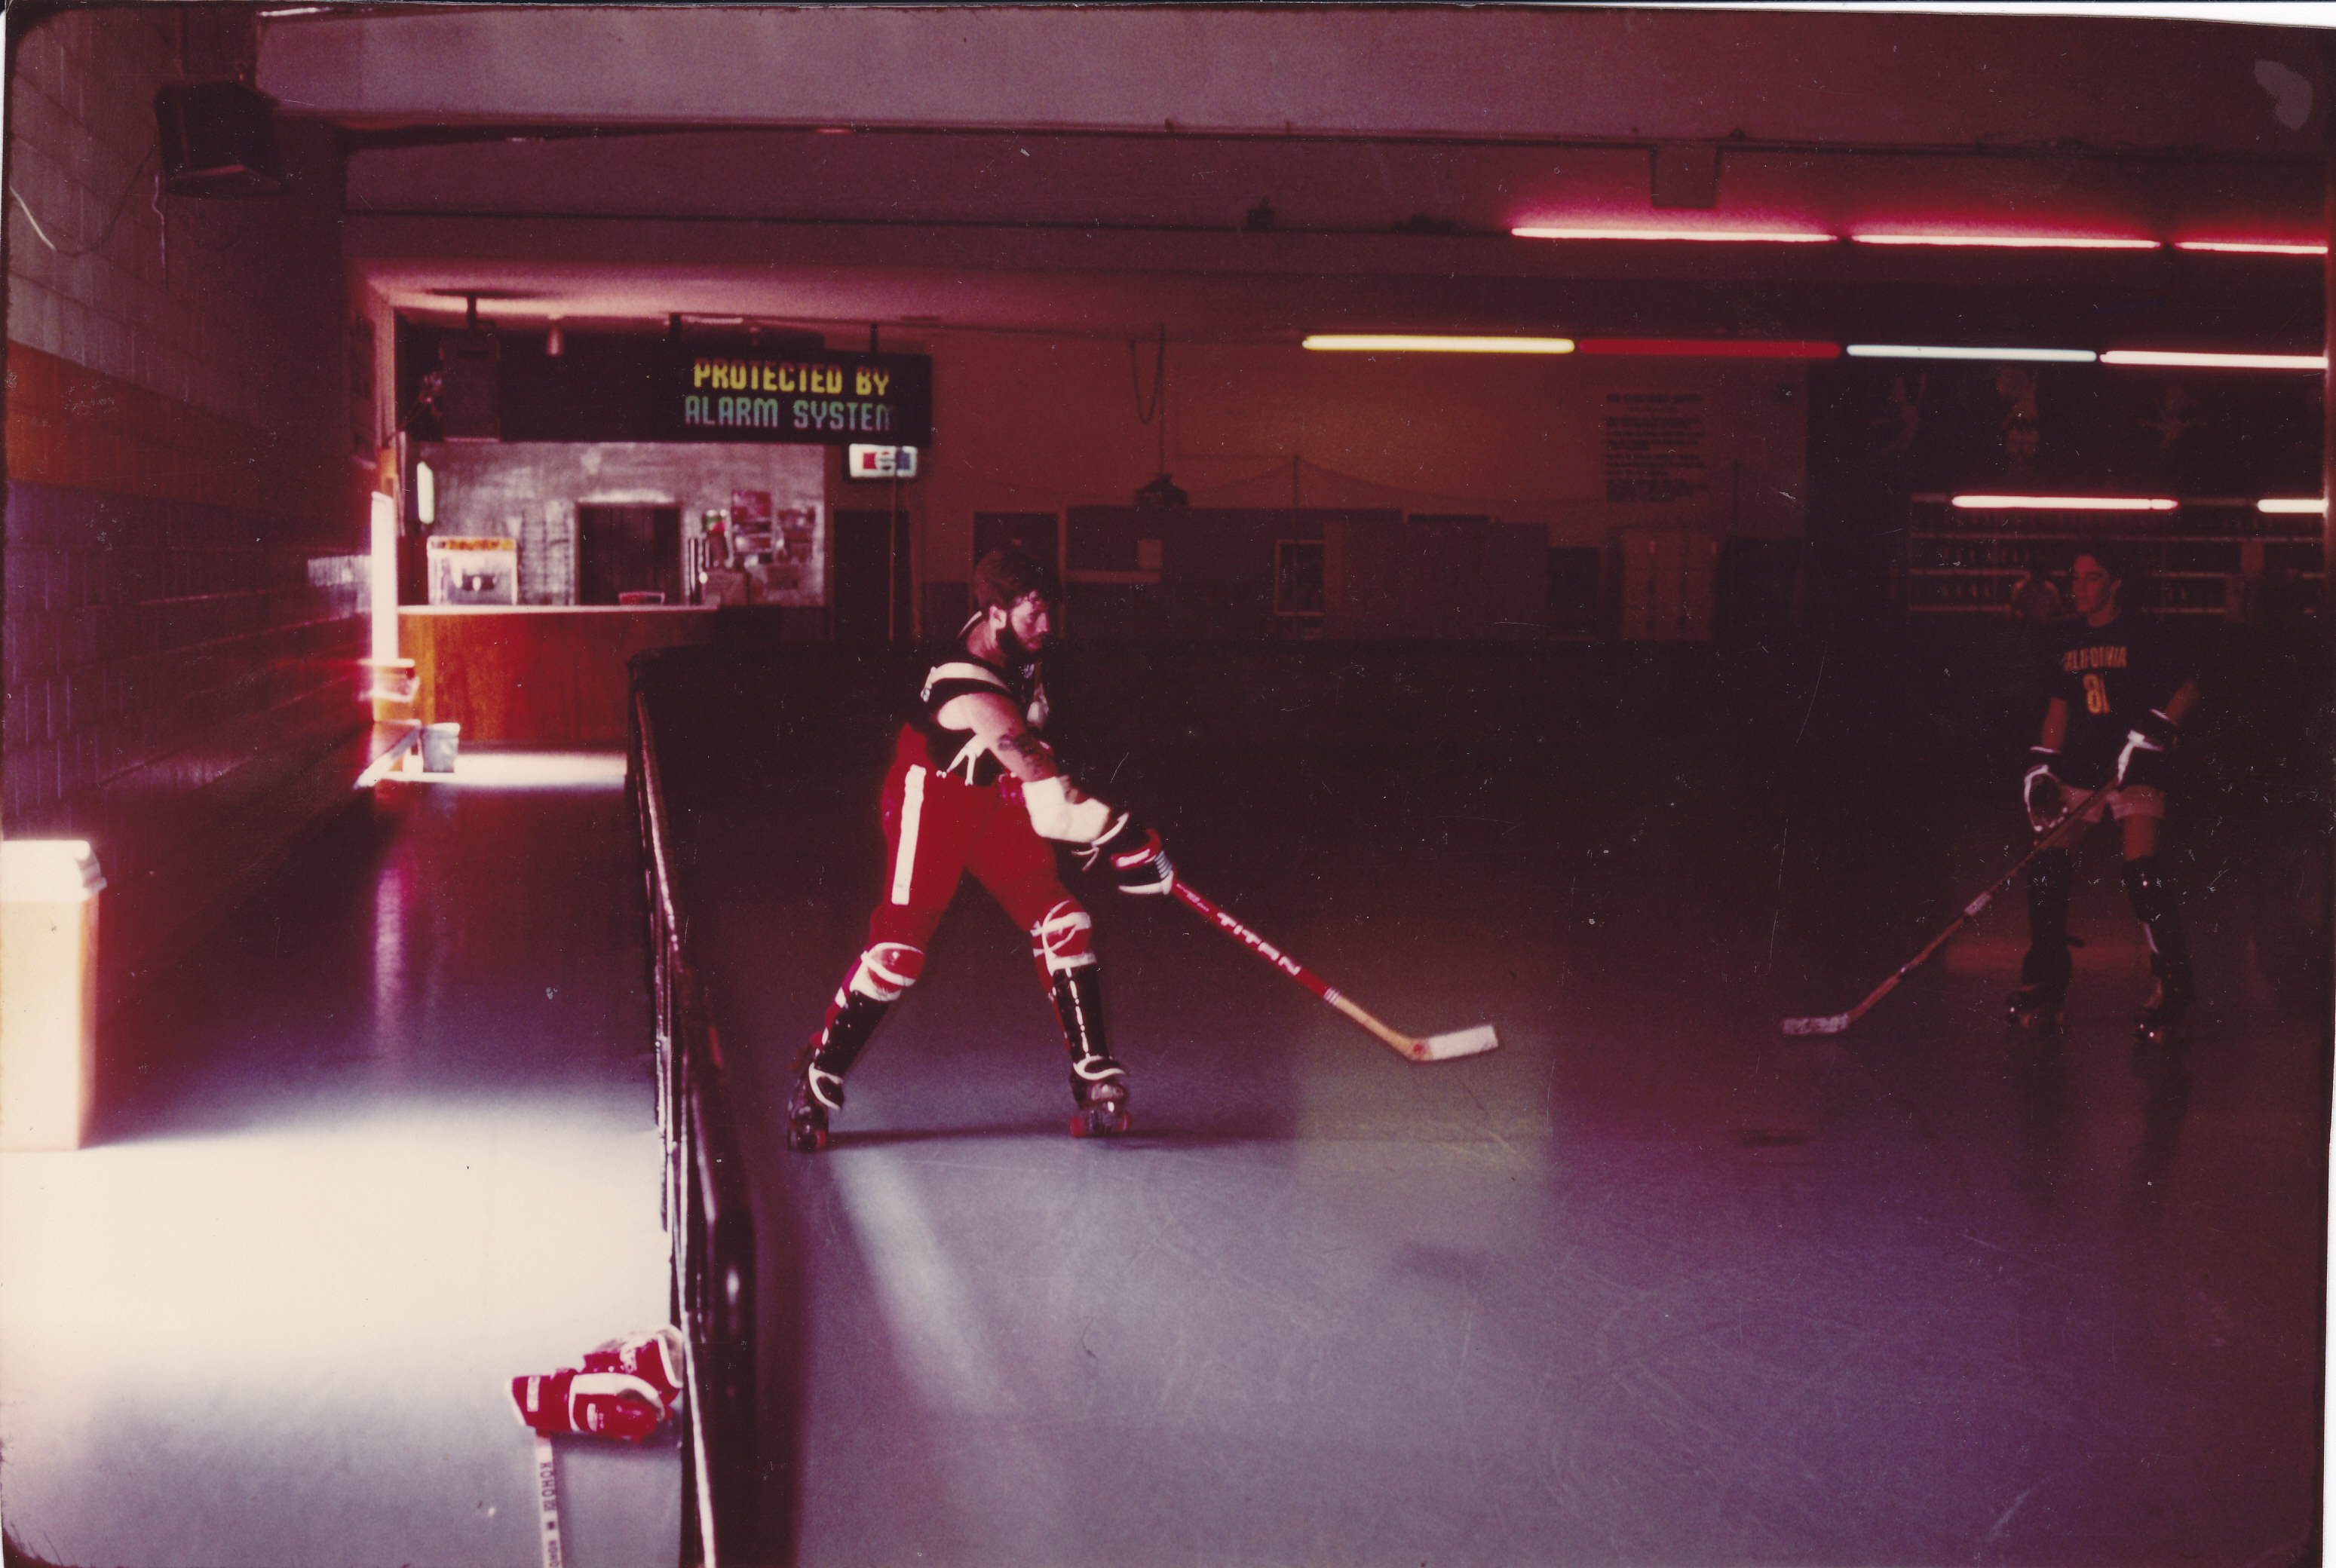 Roller skating rink kendall park nj - This Is The First Rink Where The Hosers Practiced The Tri City Roller Rink In